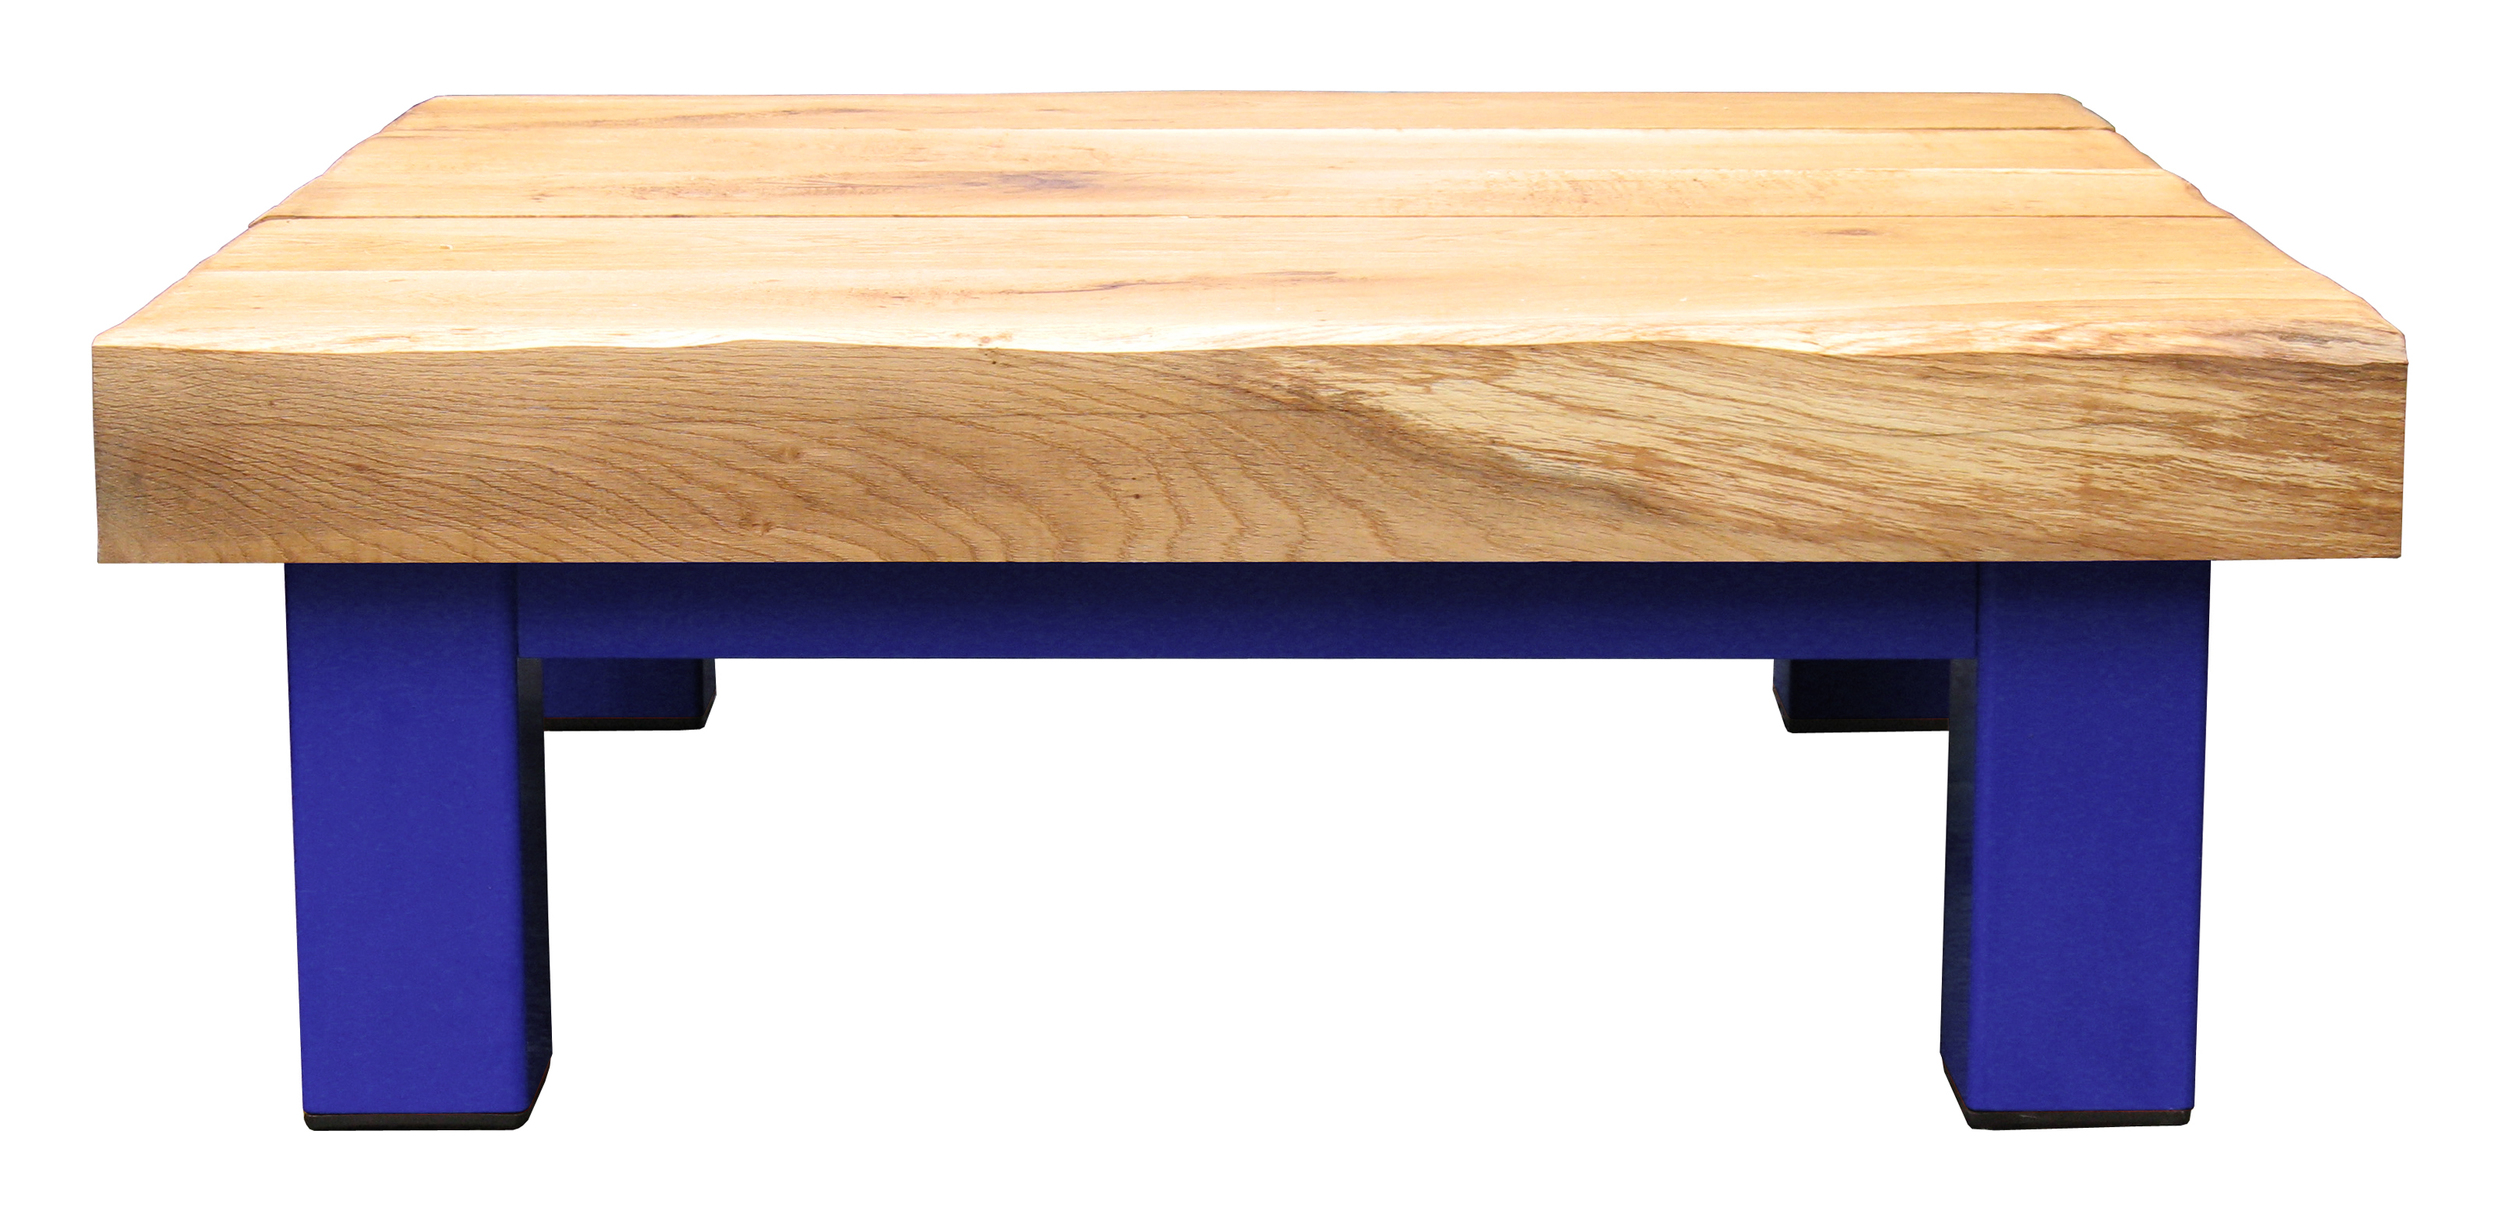 Oak & Iron Furniture Large Coffee Table - Dark Blue